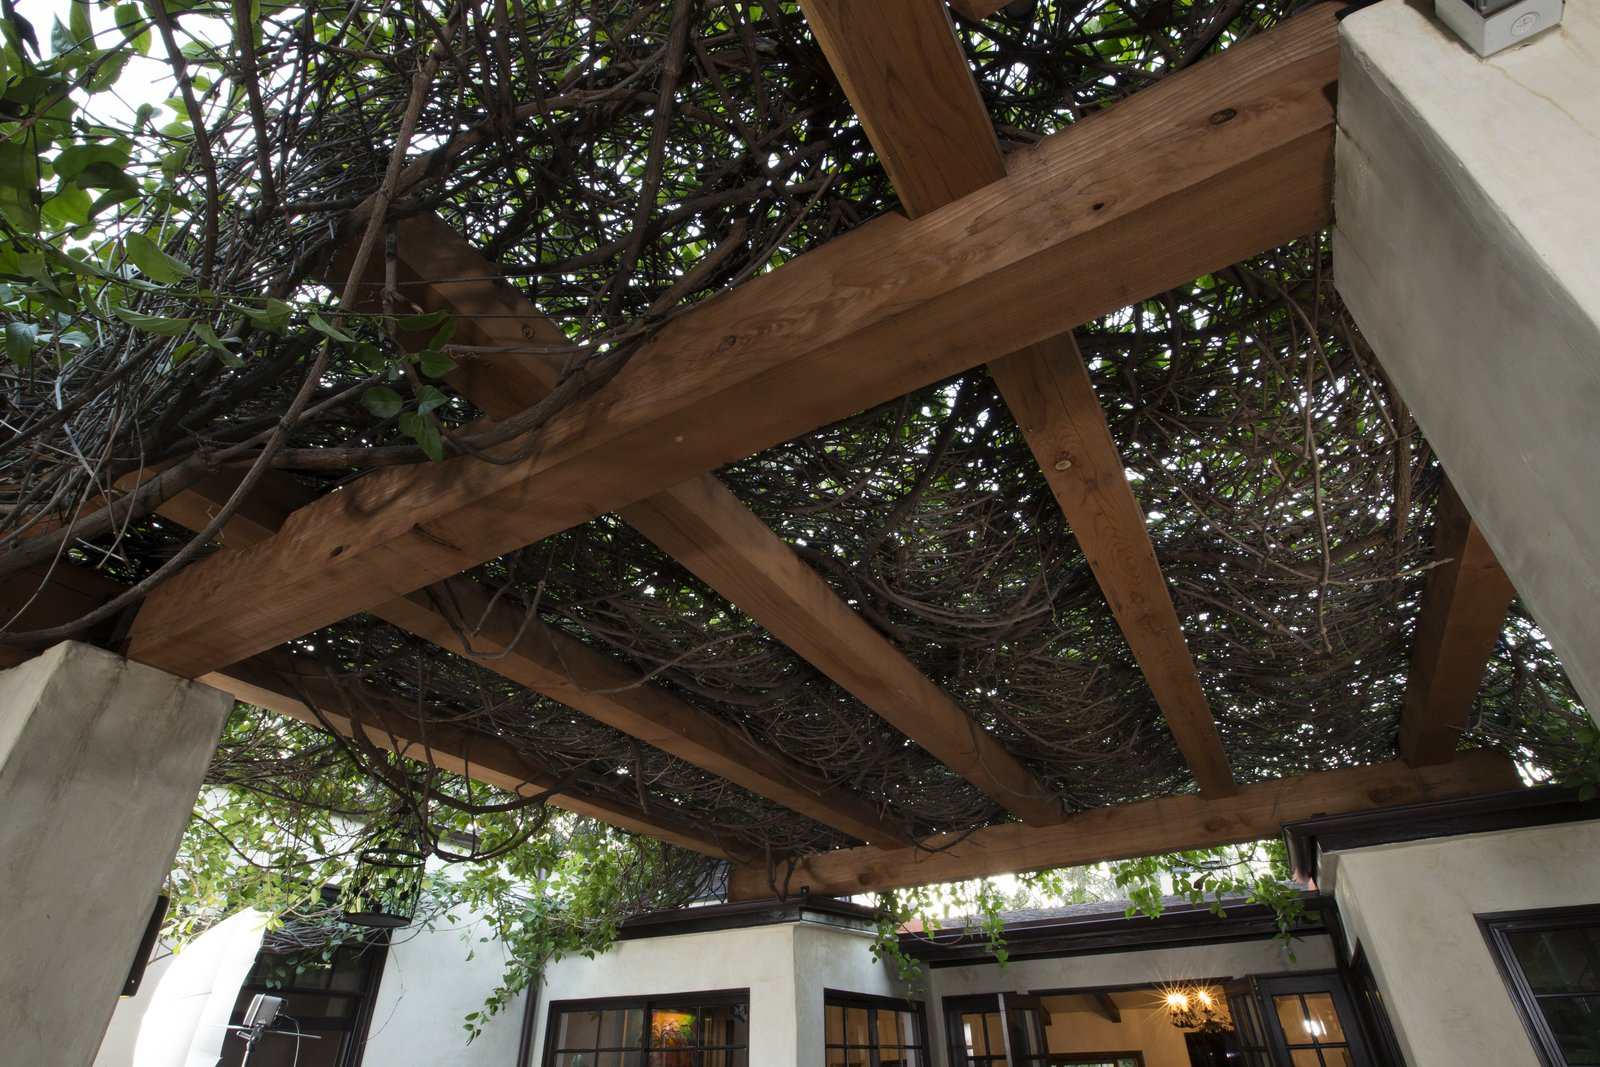 Outdoor The updated pergola celebrates this Rancho-style home's classic Hollywood Hills history.  Photo 6 of 6 in This Stunning Redwood Pergola Brings Classic Charm to its Hollywood Hills Home